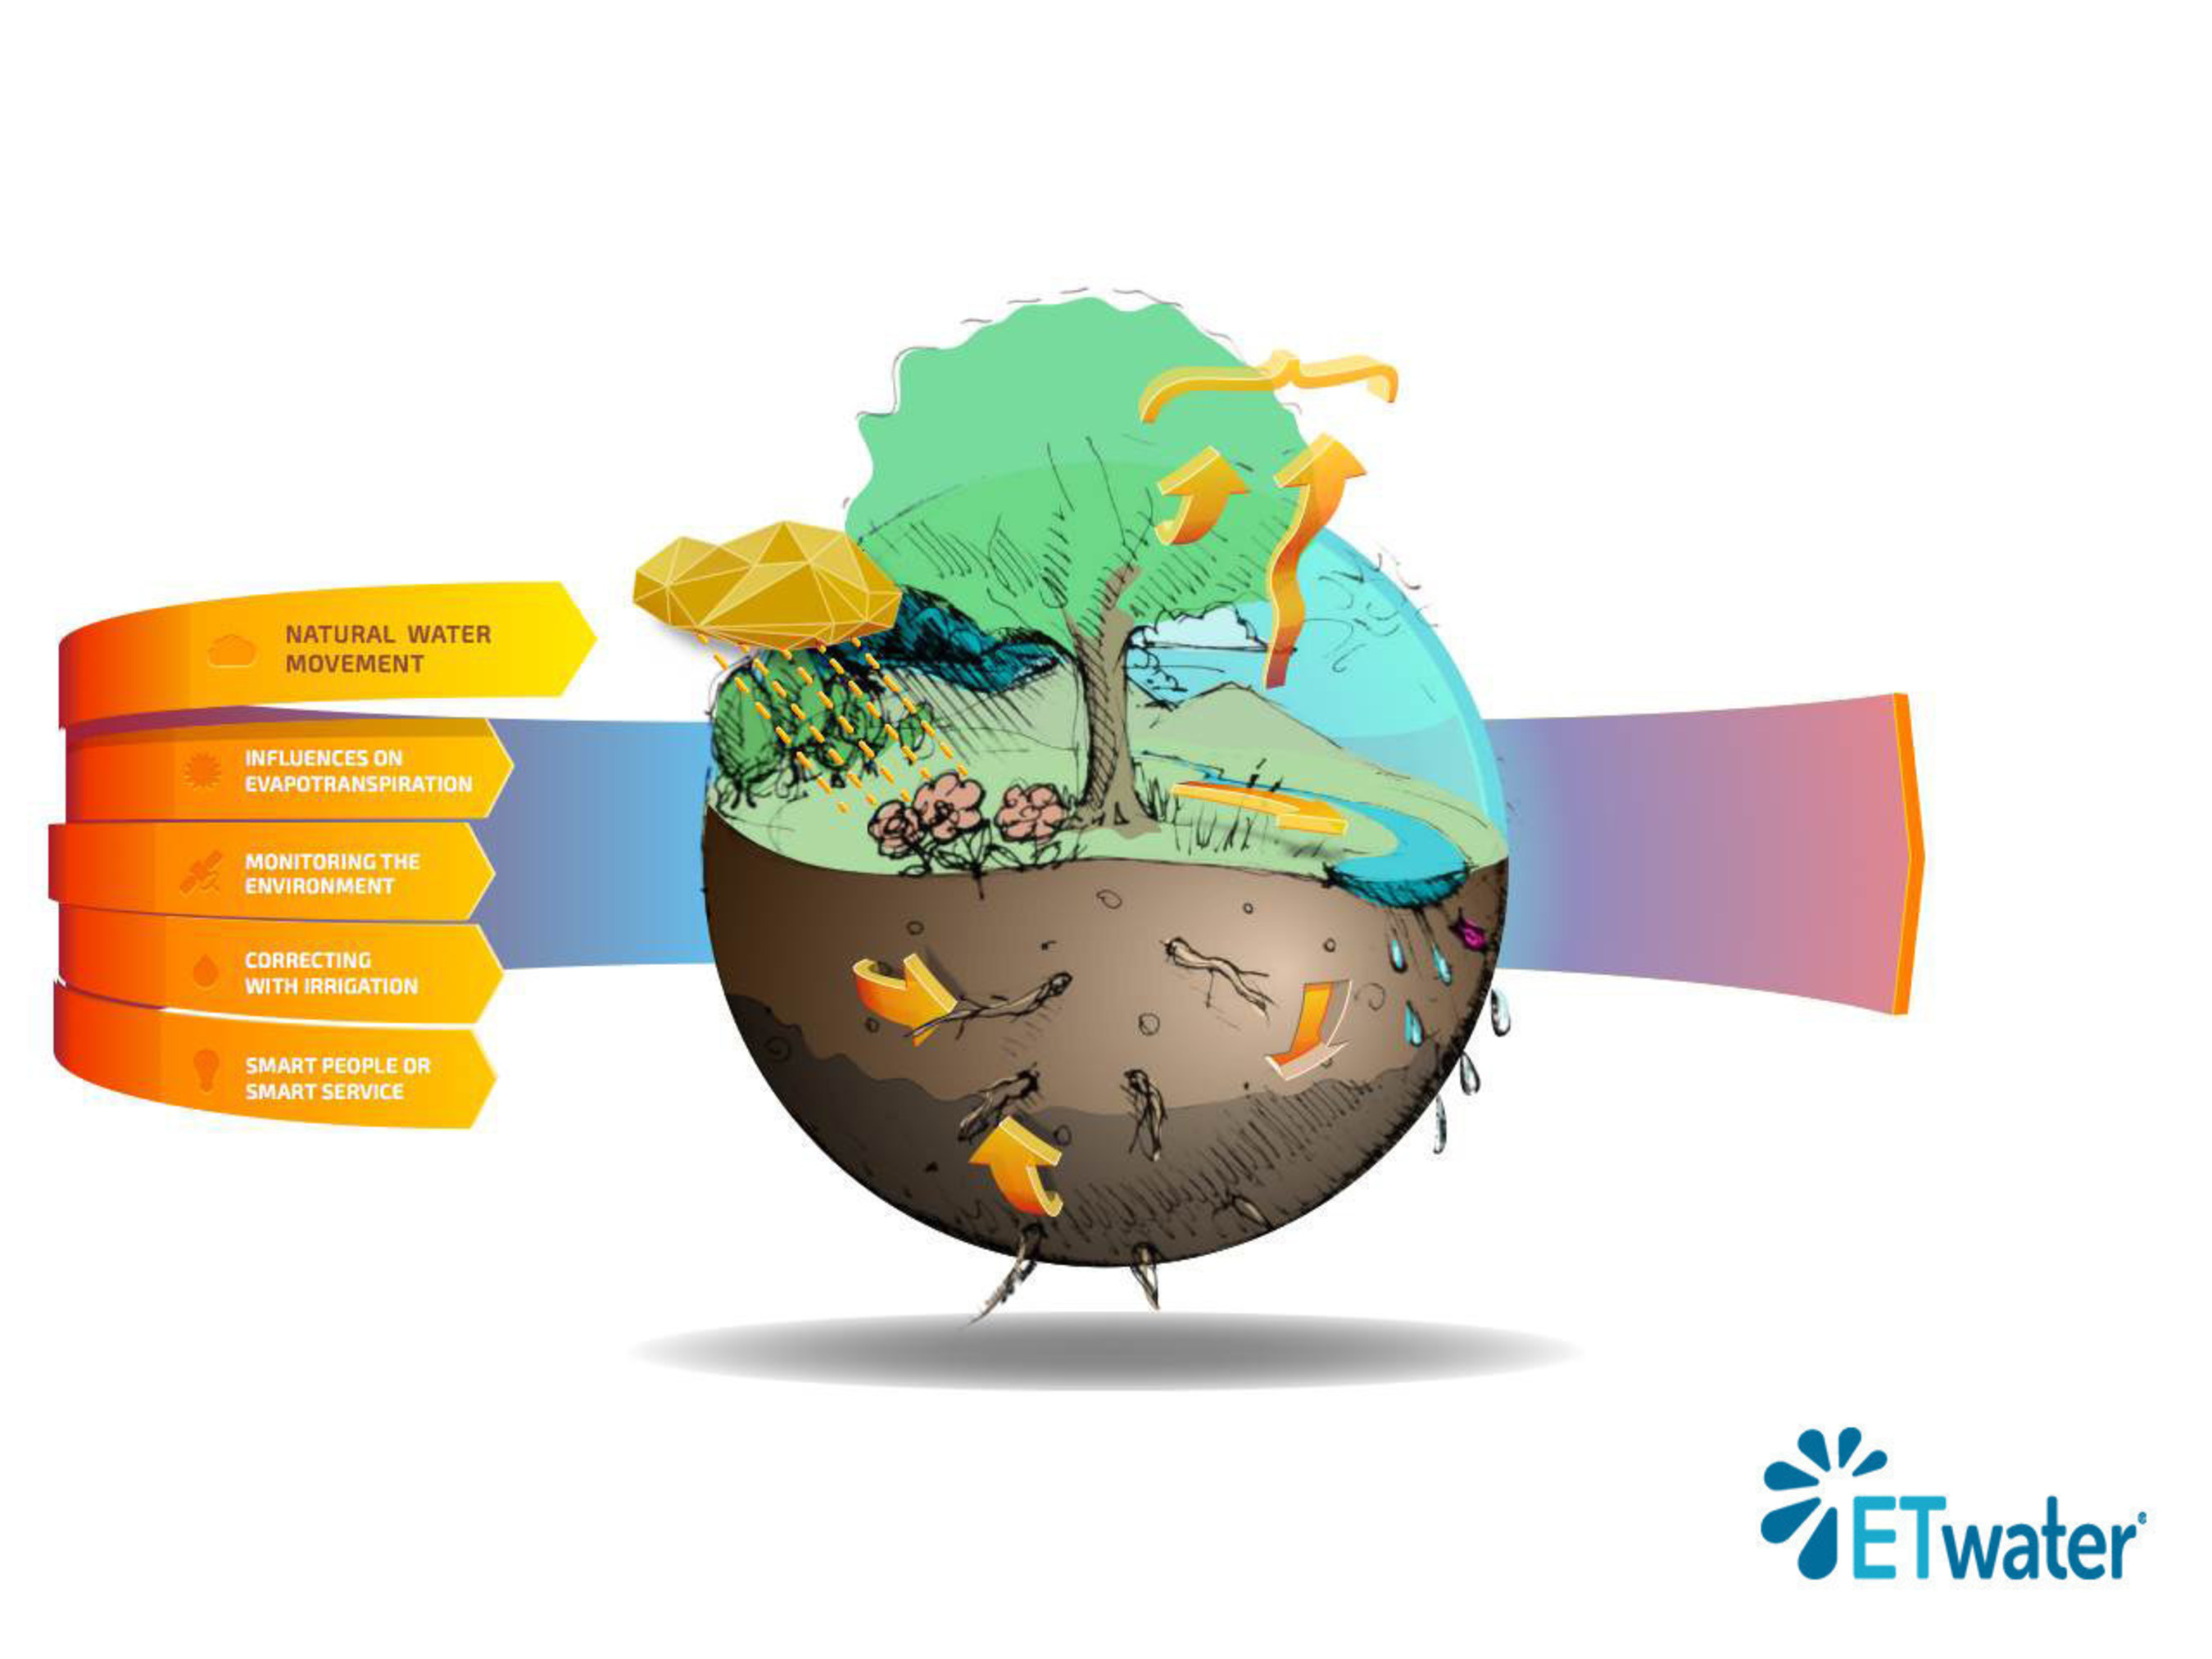 Earth Day 2015: Announcing The World's First Smart Irrigation Service